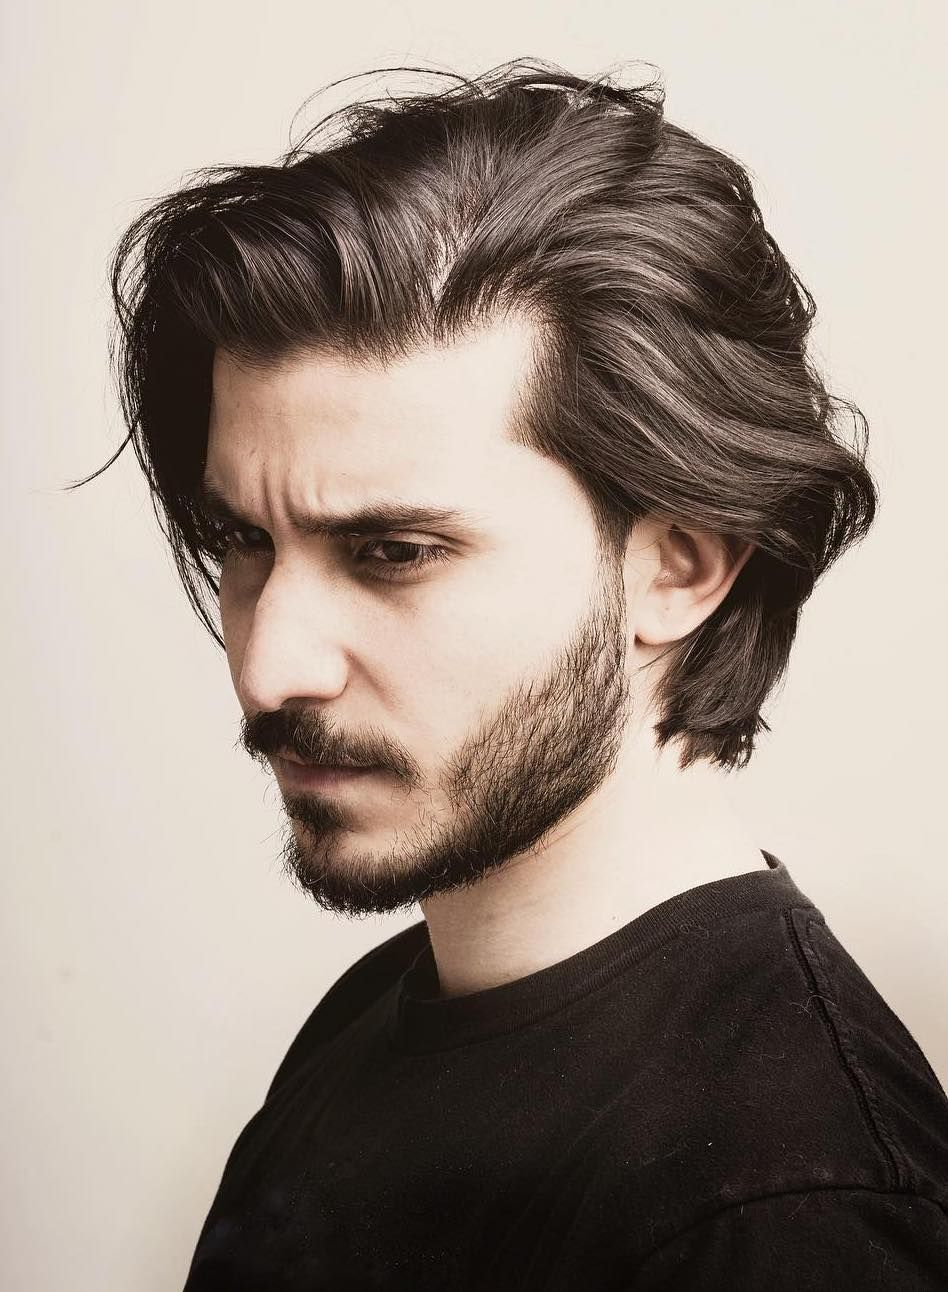 Handsome And Cool The Latest Men S Hairstyles For 2019 Latest Men Hairstyles Long Hair Styles Men Medium Length Hair Styles